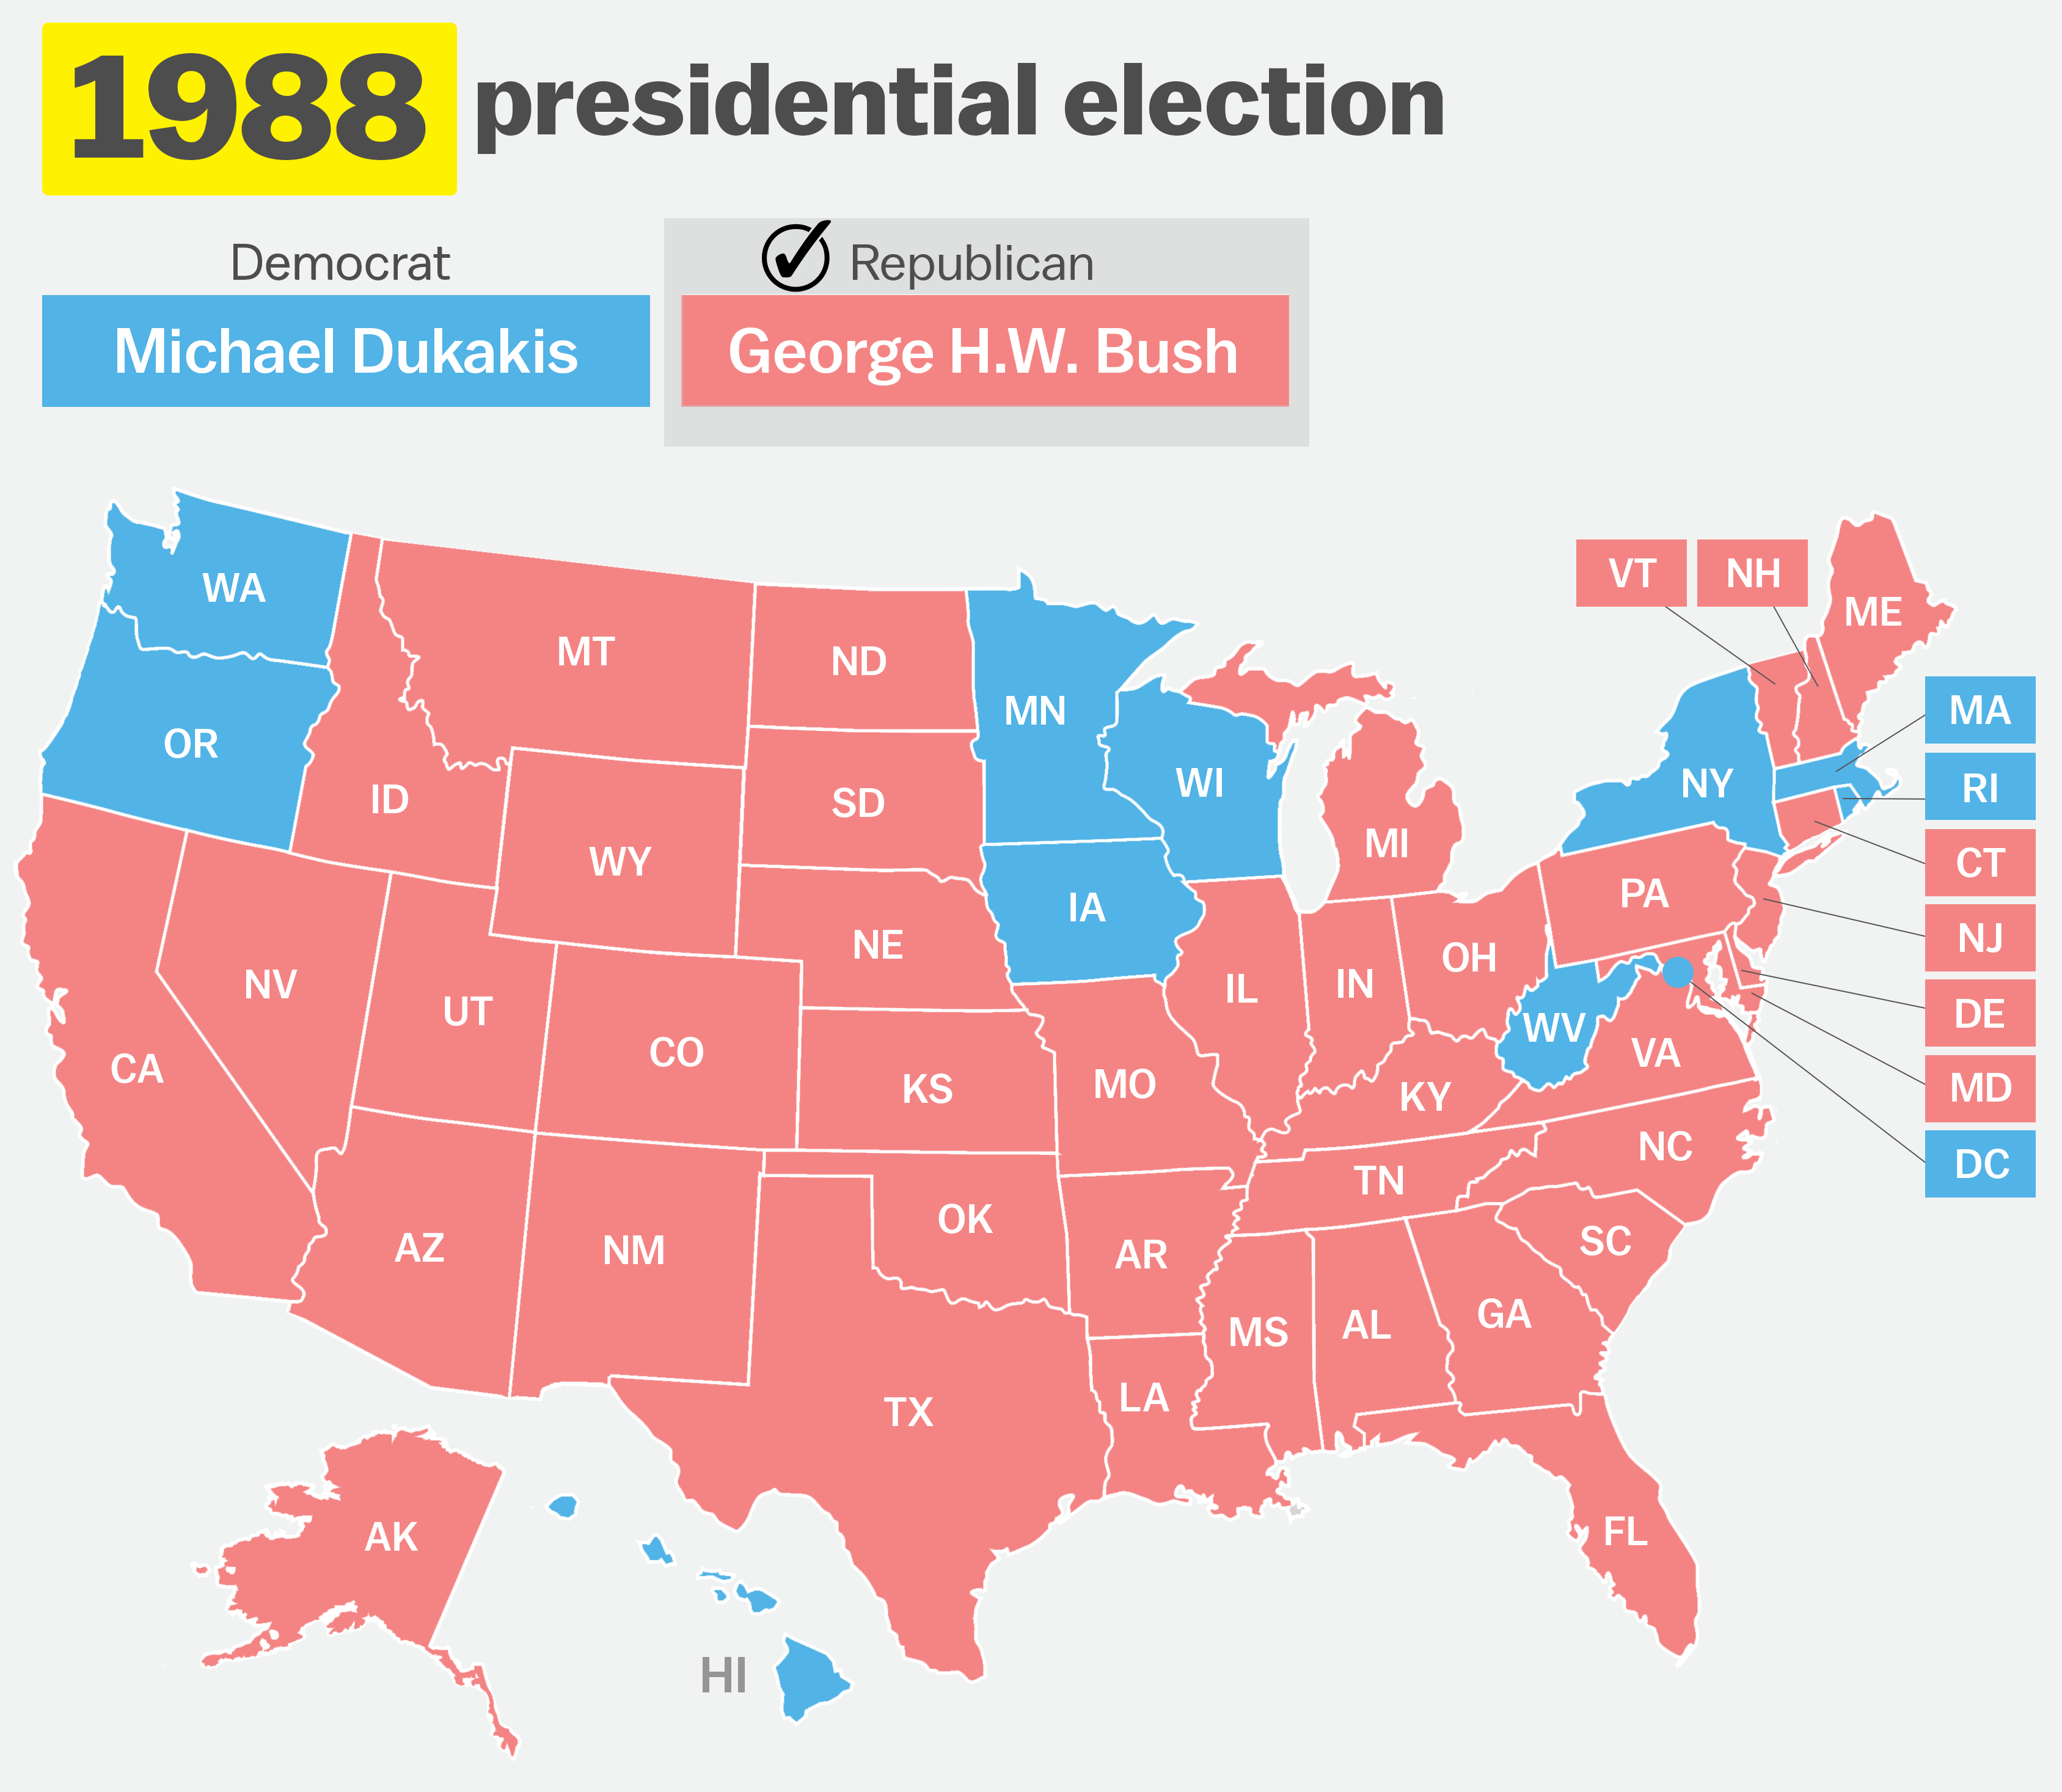 inbent vice president george h w bush rode the coattails of reagan s popularity to a considerable victory 426 electoral votes to 111 53 6 percent